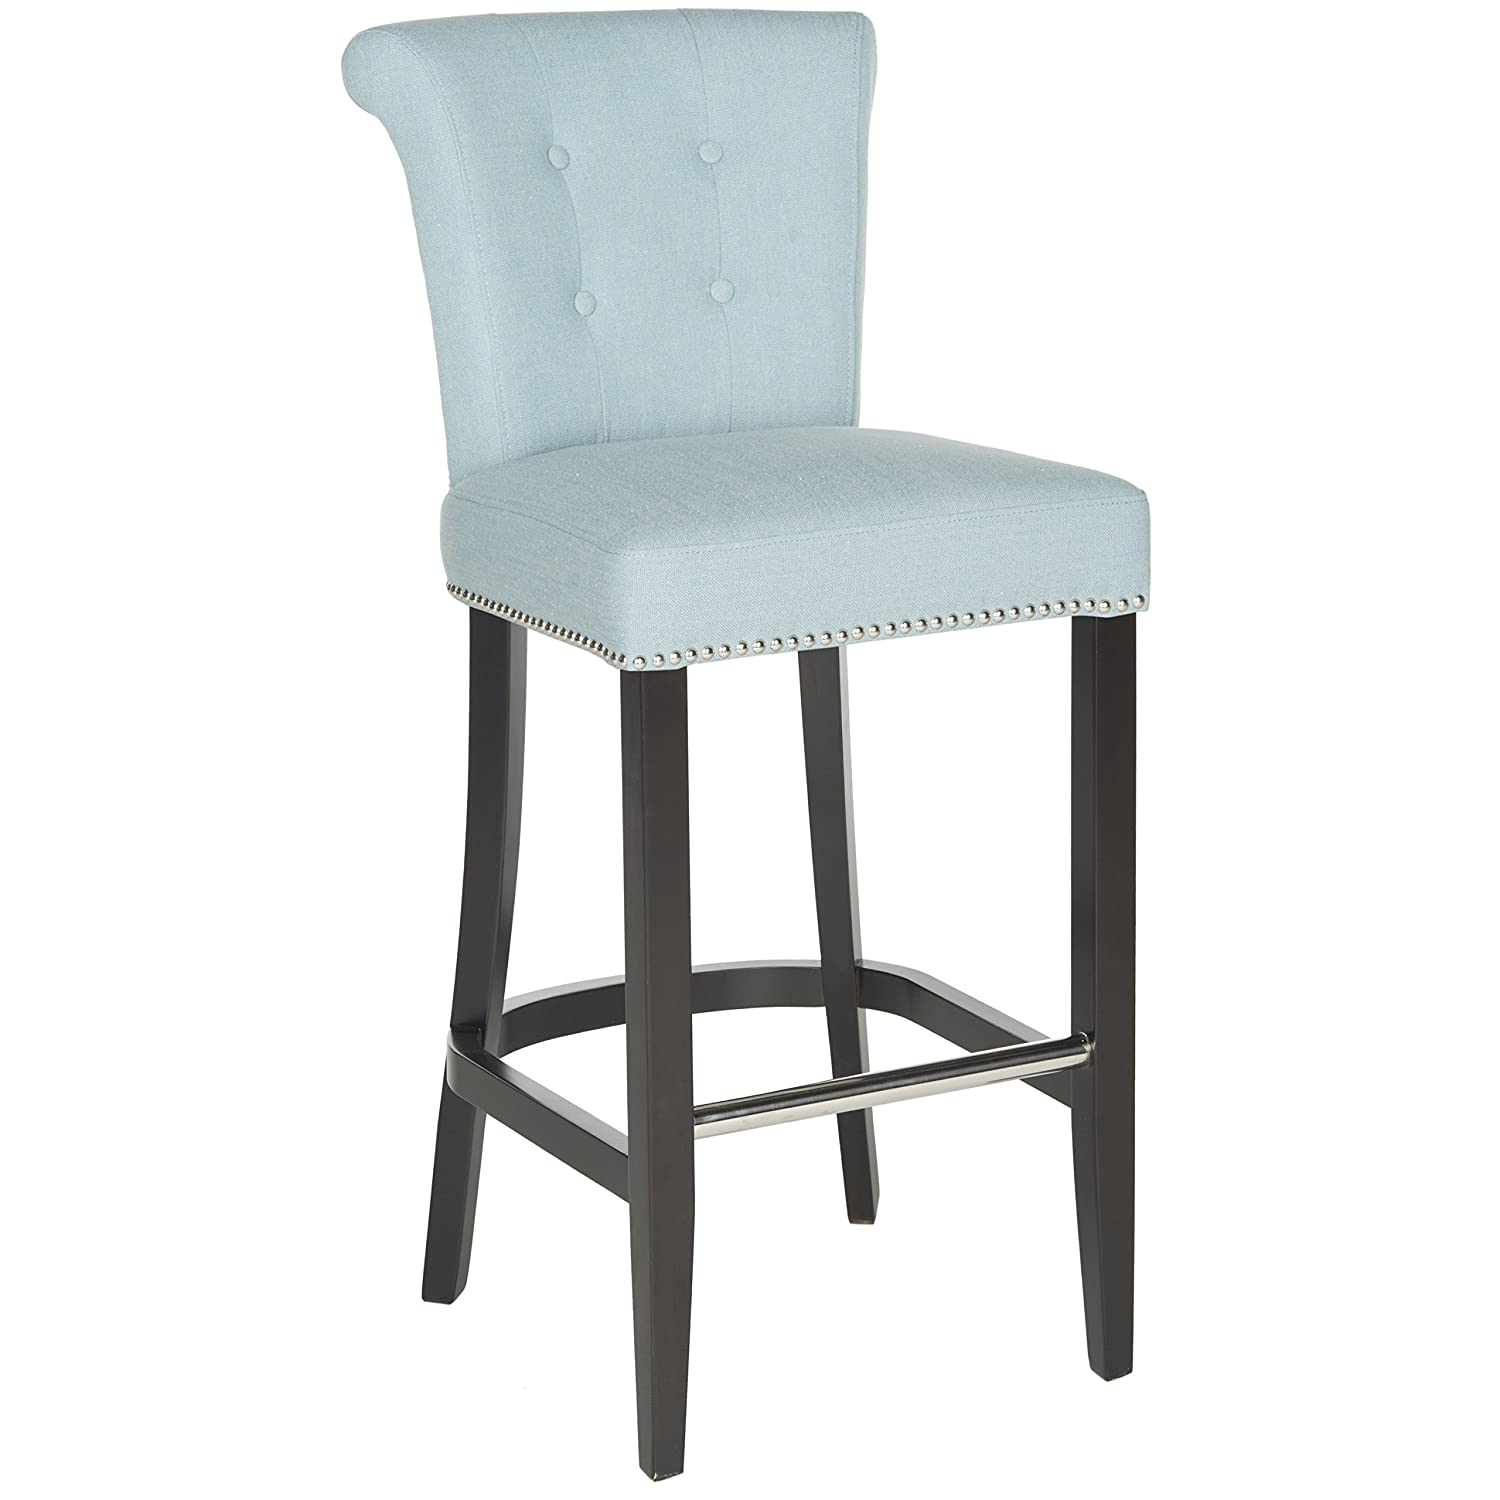 Marvelous Safavieh Hudson Collection Addo Ring Sky Blue And Espresso 29 7 Inch Bar Stool Lamtechconsult Wood Chair Design Ideas Lamtechconsultcom